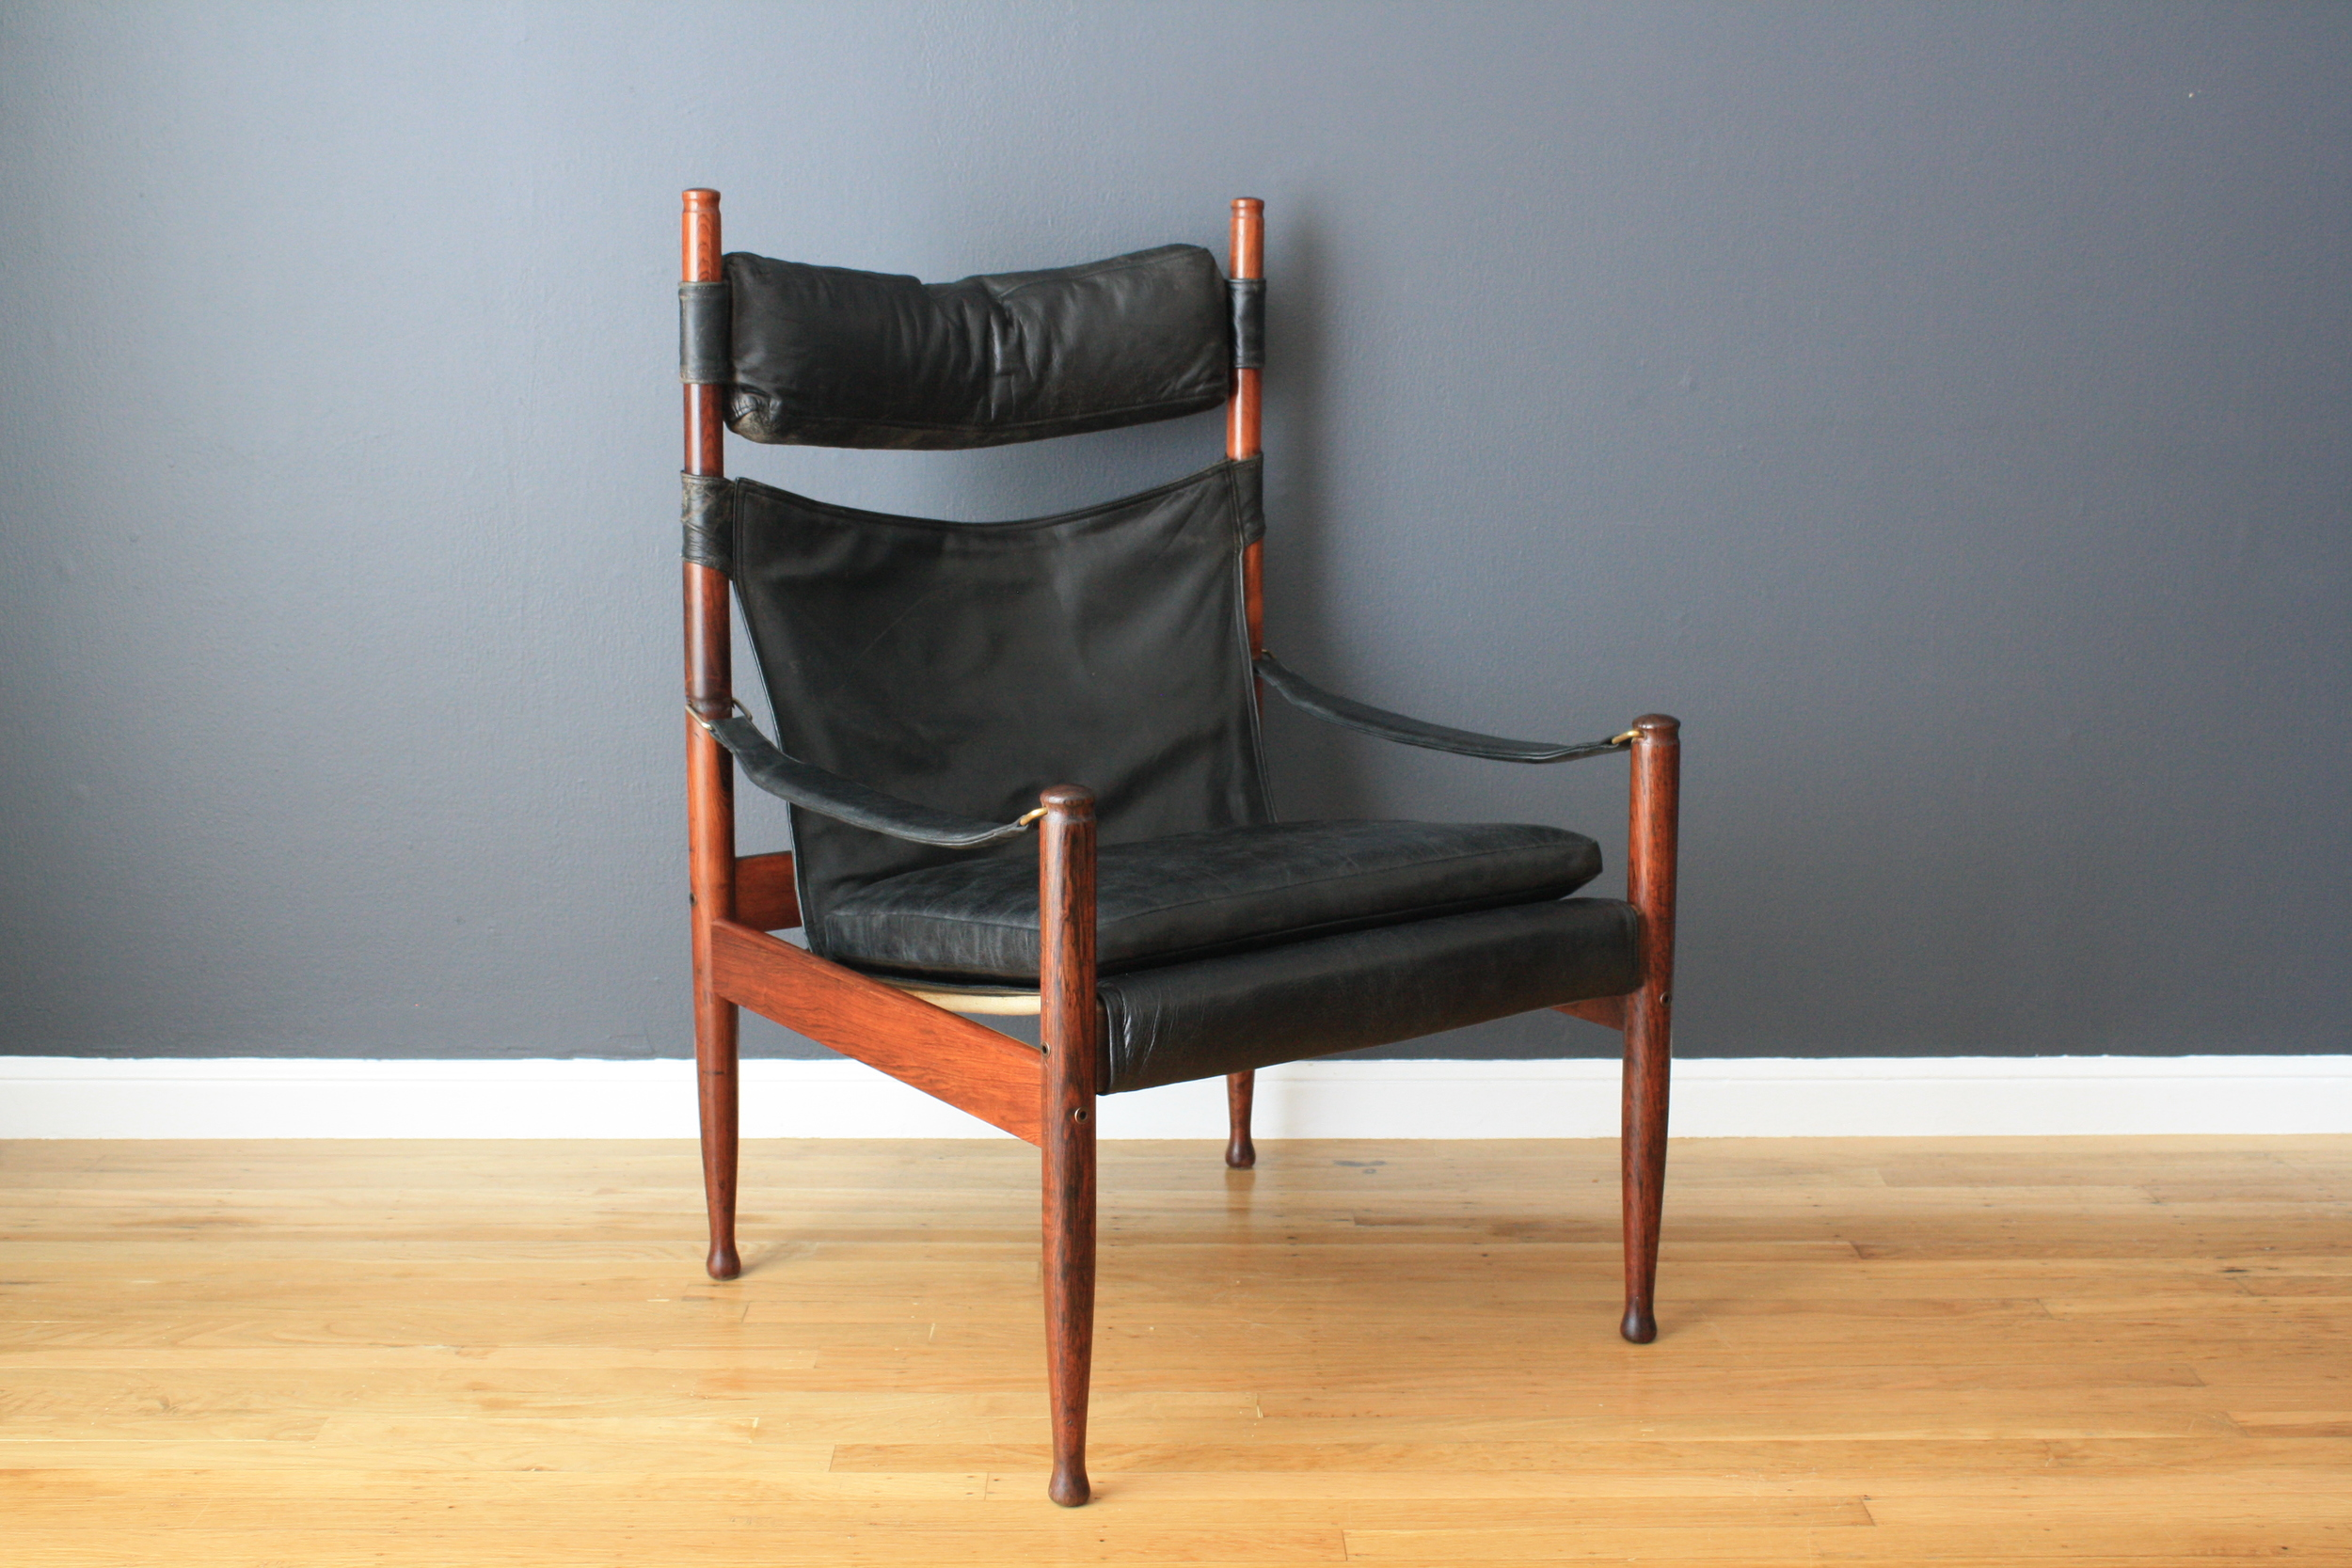 Danish Modern Rosewood Safari Chair by Jens Juul Eilersen and Eric Worts for N. Eilersen A/S